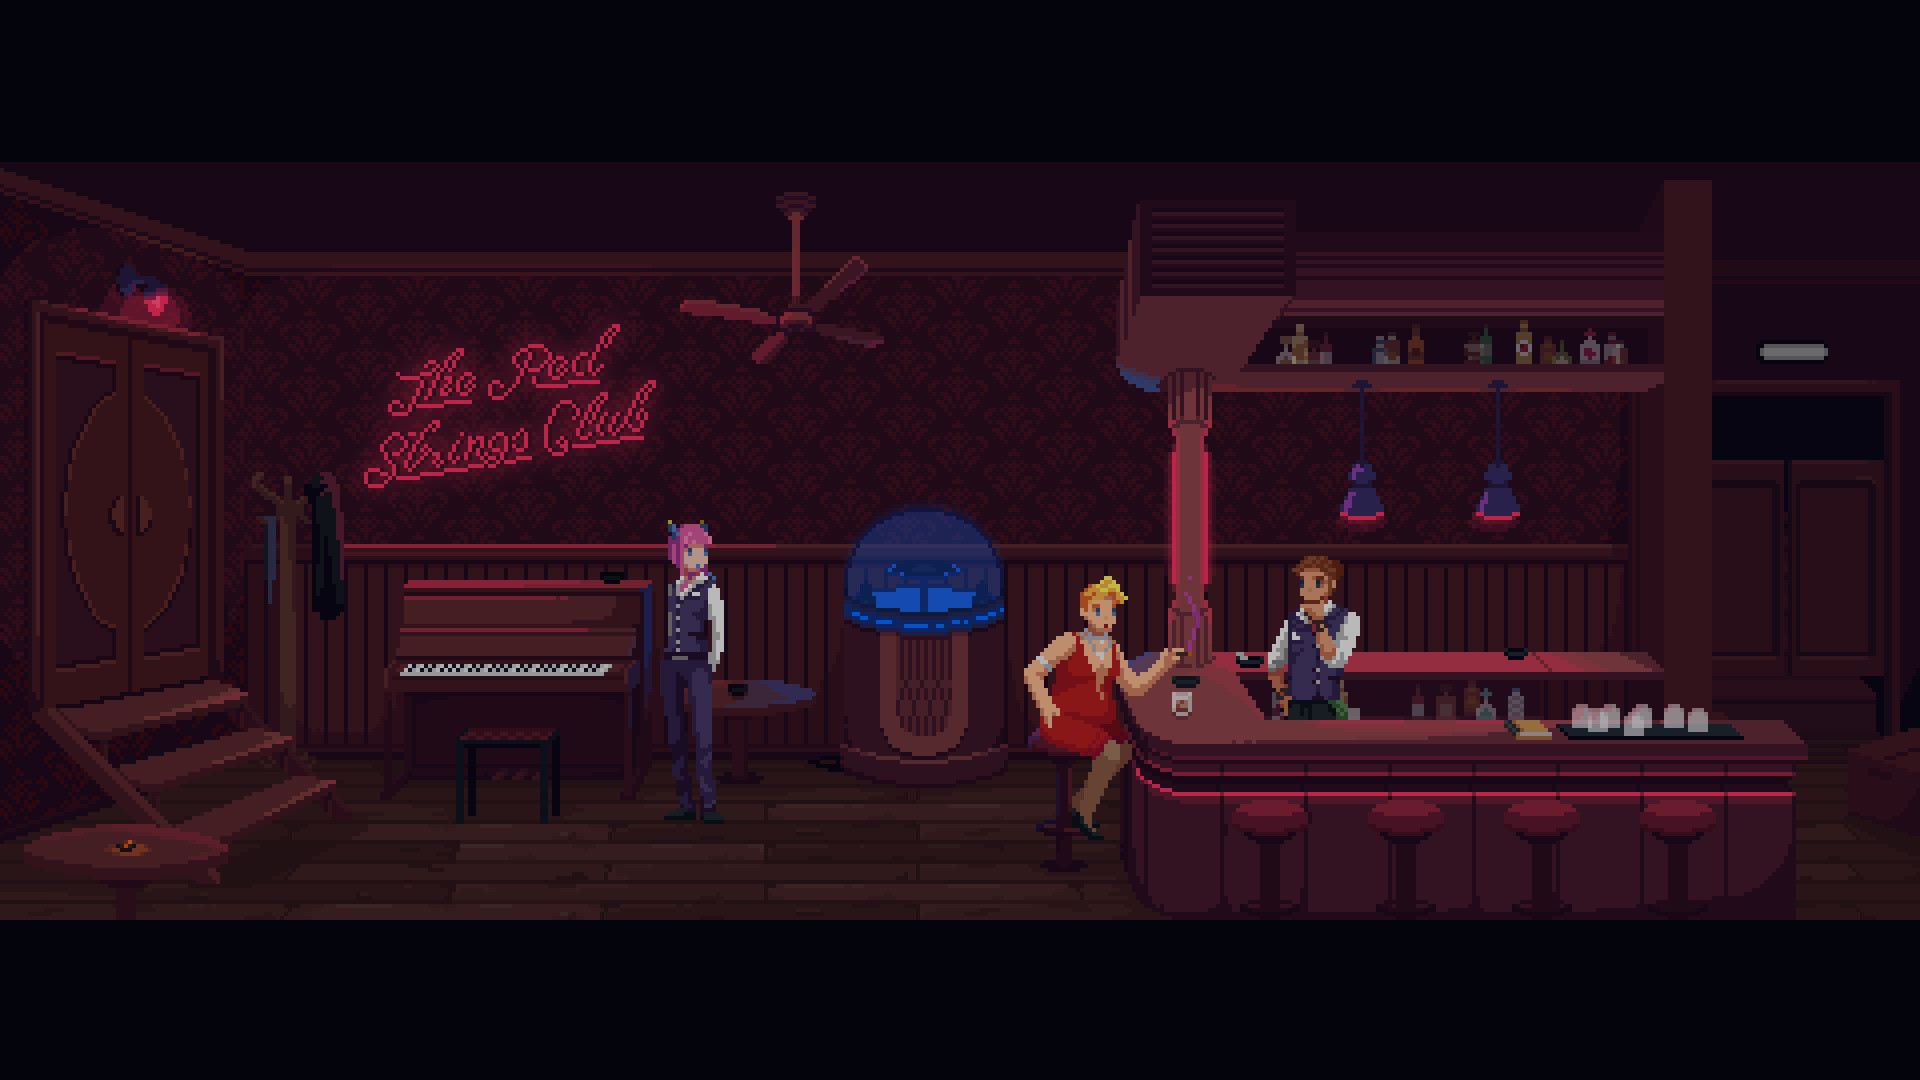 La aventura narrativa The Red Strings Club llega a PC • Consola y Tablero